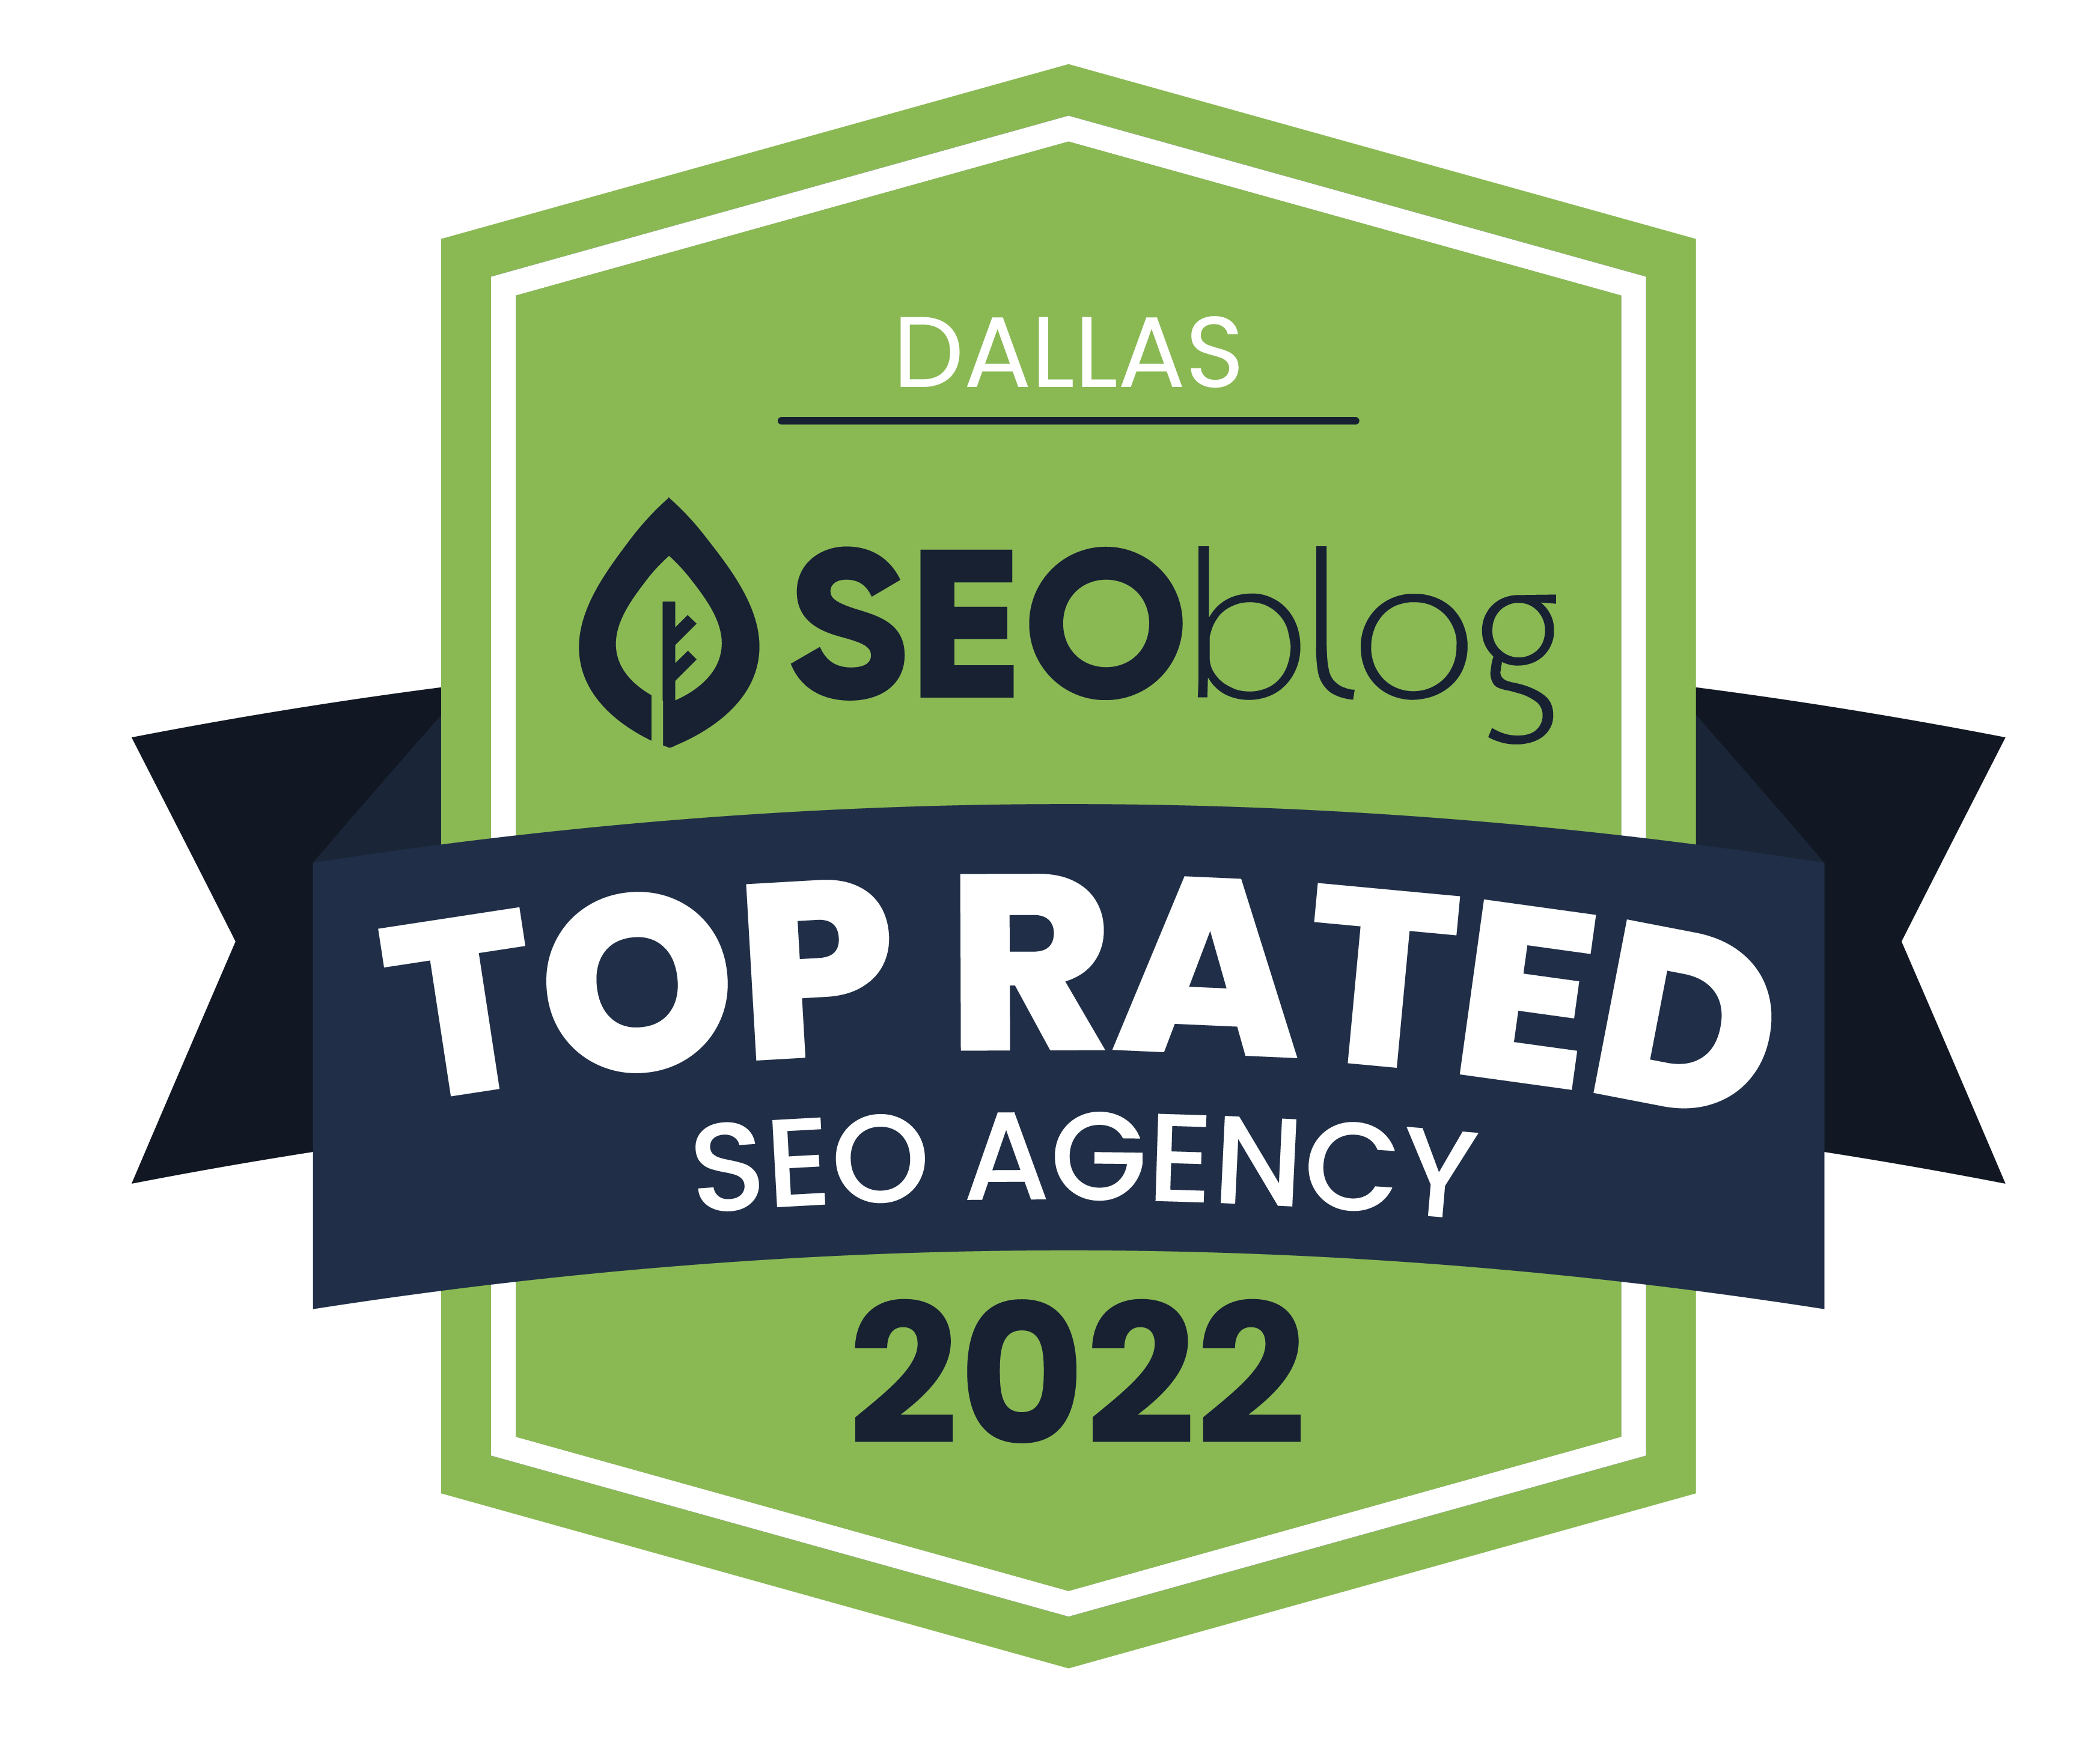 Dallas SEO Agency